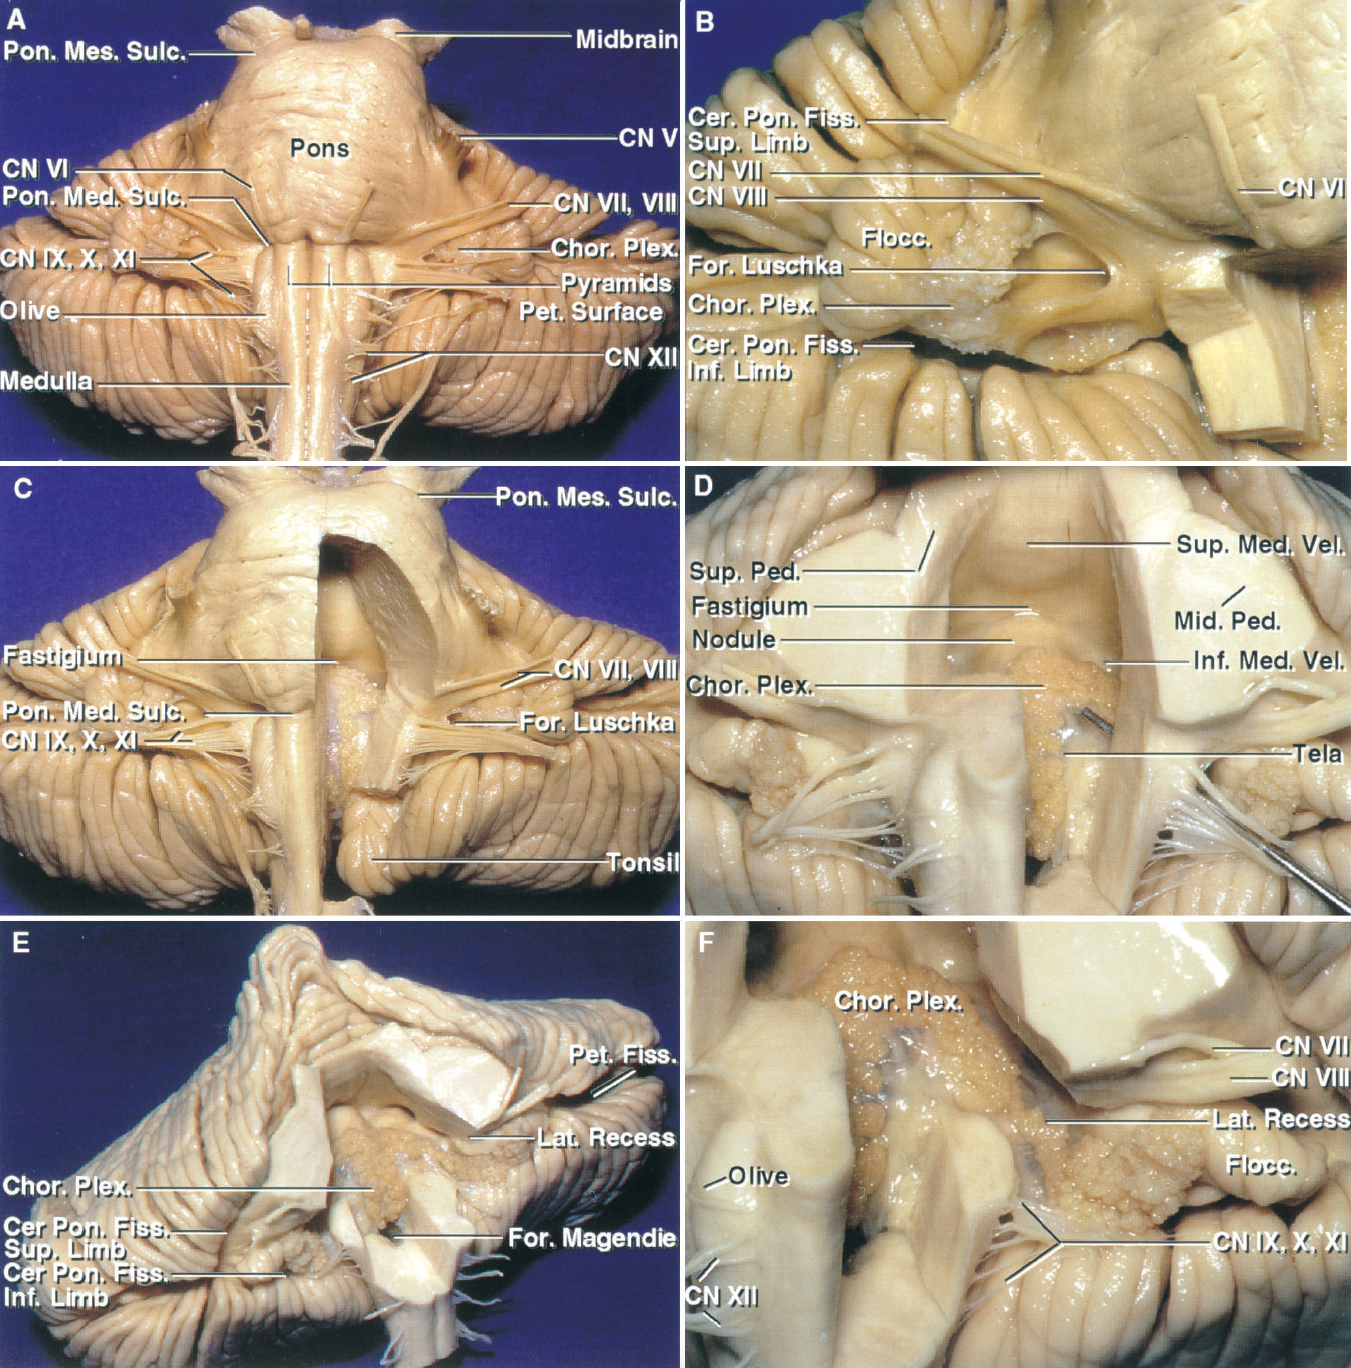 Figure 1.8. A–F. Brainstem, fourth ventricle, and petrosal cerebellar surface. Stepwise anterior exposure. A, the petrosal surface faces forward toward the posterior surface of the temporal bone. The fourth ventricle is located behind the pons and medulla. The midbrain and pons are separated by the pontomesencephalic sulcus and the pons and medulla by the pontomedullary sulcus. The trigeminal nerves arise from the midpons. The abducens nerve arises in the medial part of the pontomedullary sulcus, rostral to the medullary pyramids. The facial and vestibulocochlear nerves arise at the lateral end of the pontomedullary sulcus immediately rostral to the foramen of Luschka. The hypoglossal nerves arise anterior to the olives and the glossopharyngeal, vagus, and accessory nerves arise posterior to the olives. Choroid plexus protrudes from the foramen of Luschka behind to the glossopharyngeal and vagus nerves. B, right cerebellopontine angle following removal of some of the medulla. The foramen of Luschka opens into the cerebellopontine angle below the junction of the facial and vestibulocochlear nerves with the lateral end of the pontomedullary sulcus. Choroid plexus protrudes from the lateral recess and fora- men of Luschka behind the glossopharyngeal, vagus, and accessory nerves. The cerebellopontine fissure, a V-shaped fissure formed by the cerebellum wrapping around the pons and middle cerebellar peduncle, has a superior and inferior limb that define the margins of the cerebellopontine angle. The superior limb extends above the trigeminal nerve and the inferior limb passes below the flocculus and the nerves that pass to the jugular foramen. C, the part of the pons and medulla forming the left half of the floor of the ventricle has been removed to expose the fastigium, which divides the ventricular roof into superior and inferior parts. D, the right half of the pons has been removed to expose the upper half of the roof. The superior part of the roof is formed by the su